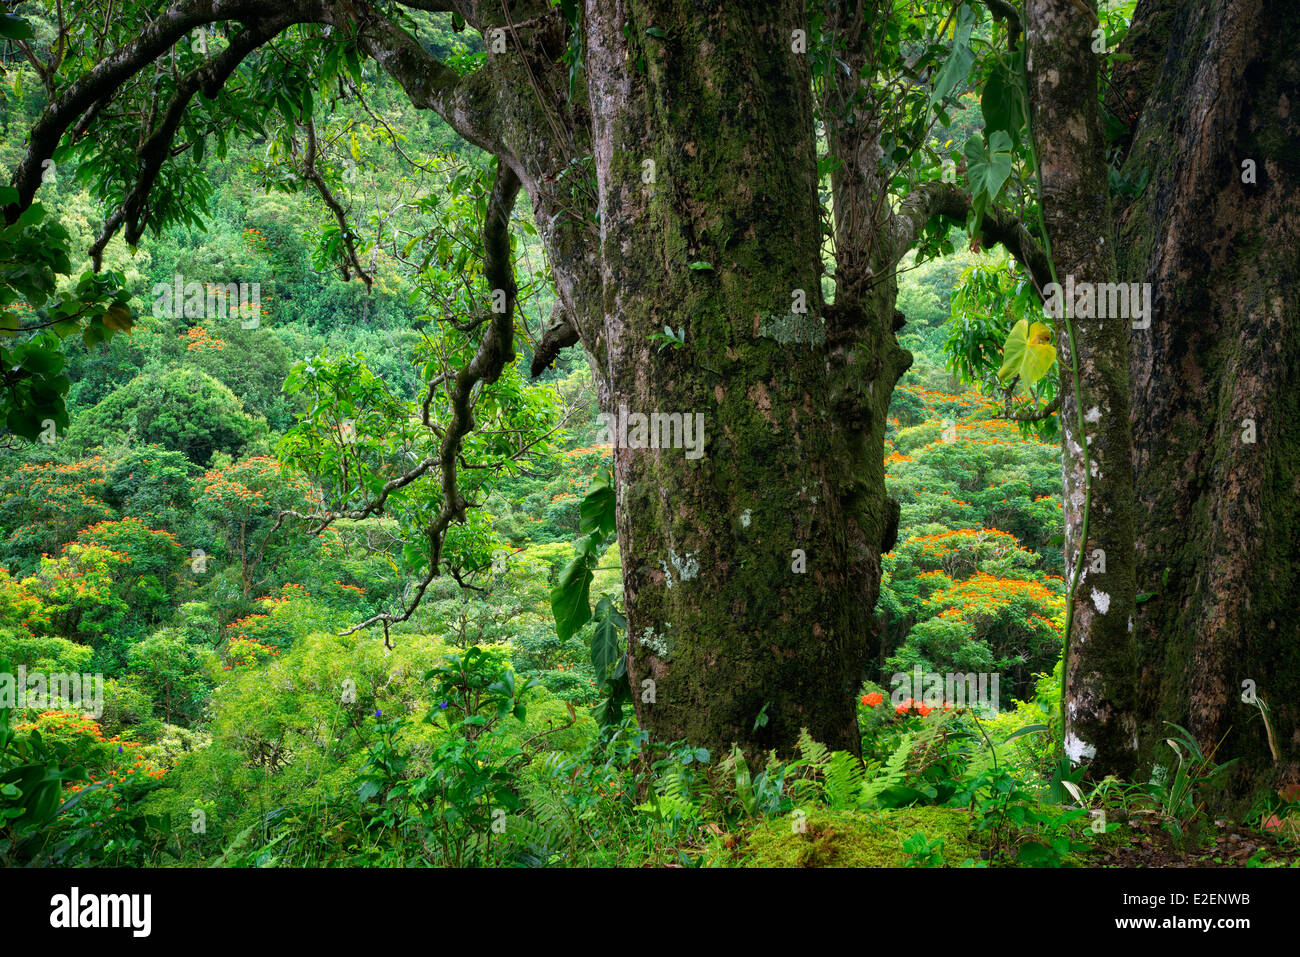 African Tulip Trees as seen through trees on road to Hana. Maui, Hawaii - Stock Image